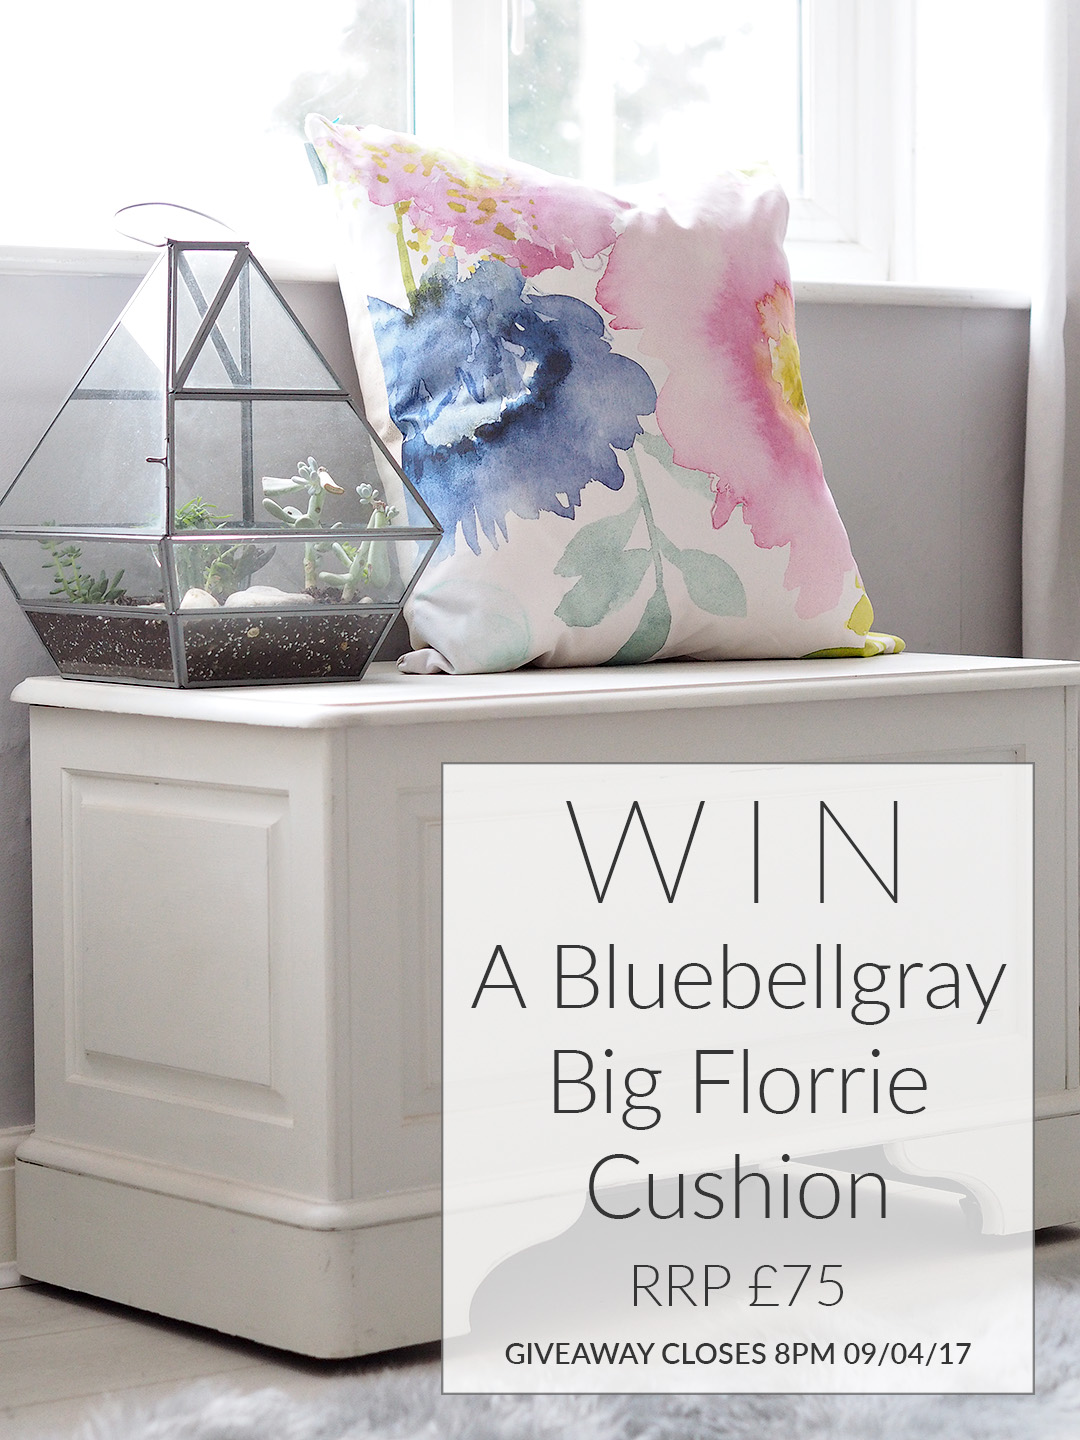 Bluebellgray Giveaway